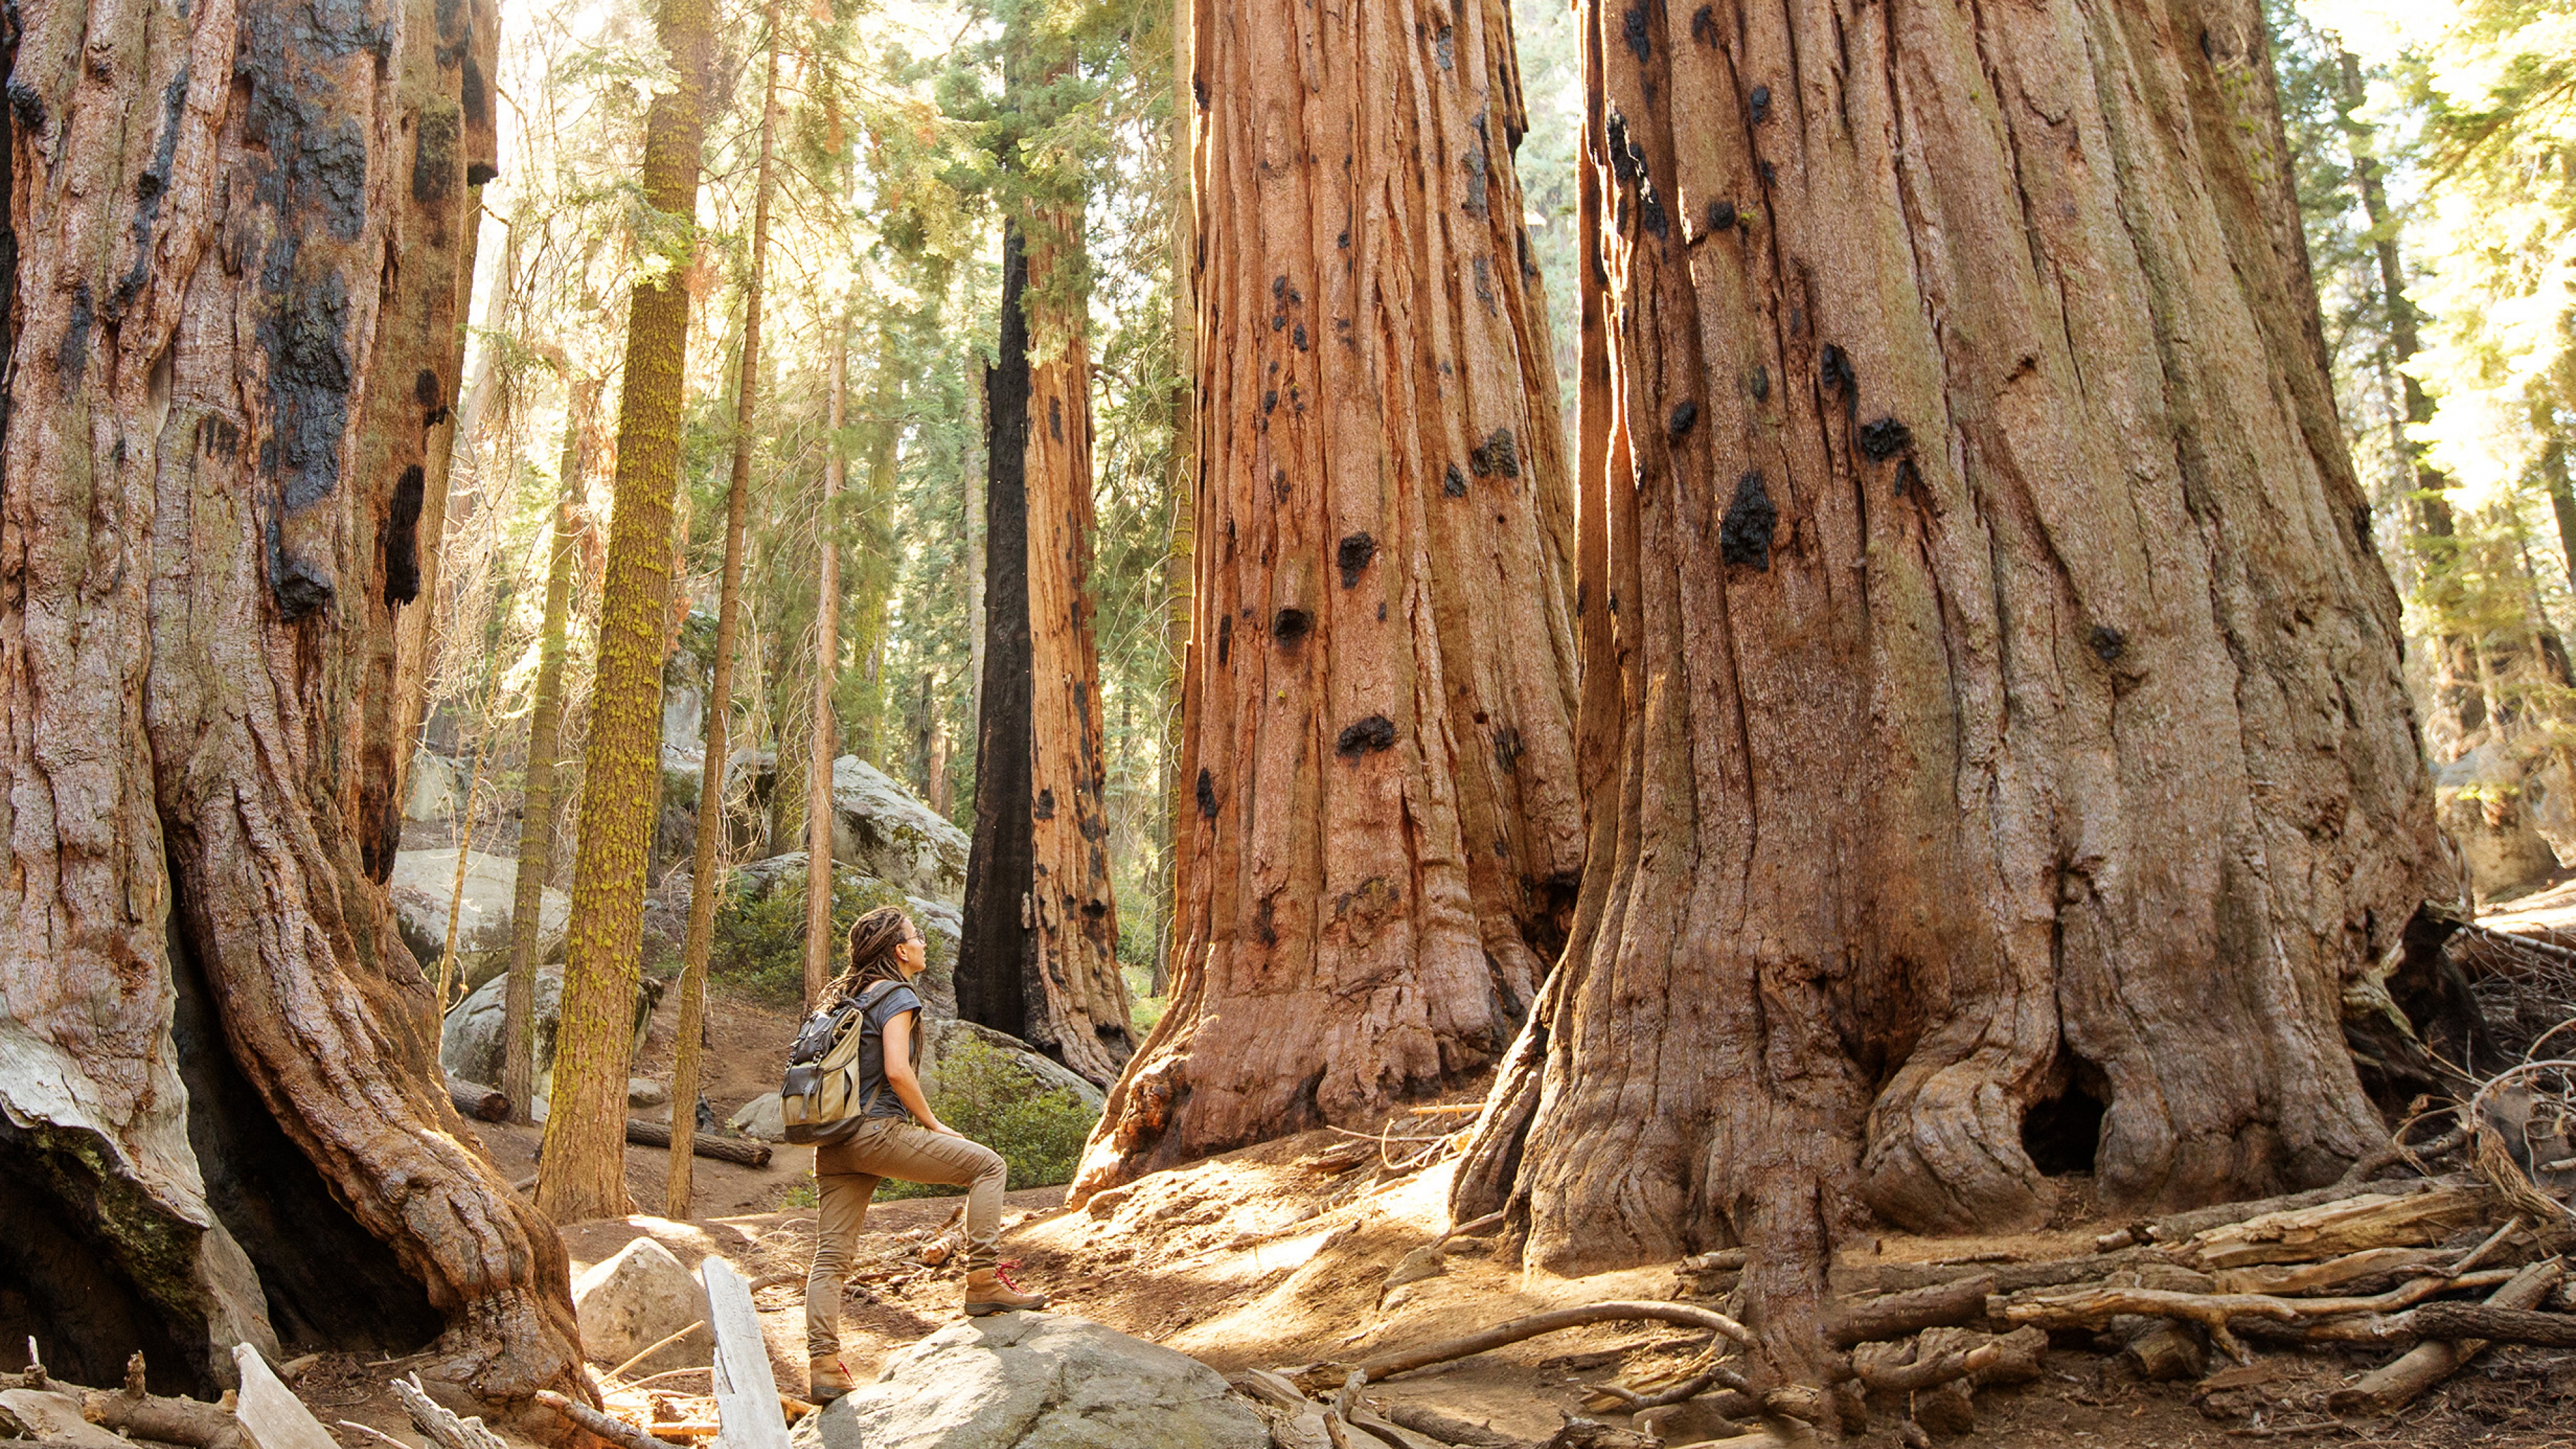 A hiker looks up at giant sequoia trees as light filters through the green and brown branches